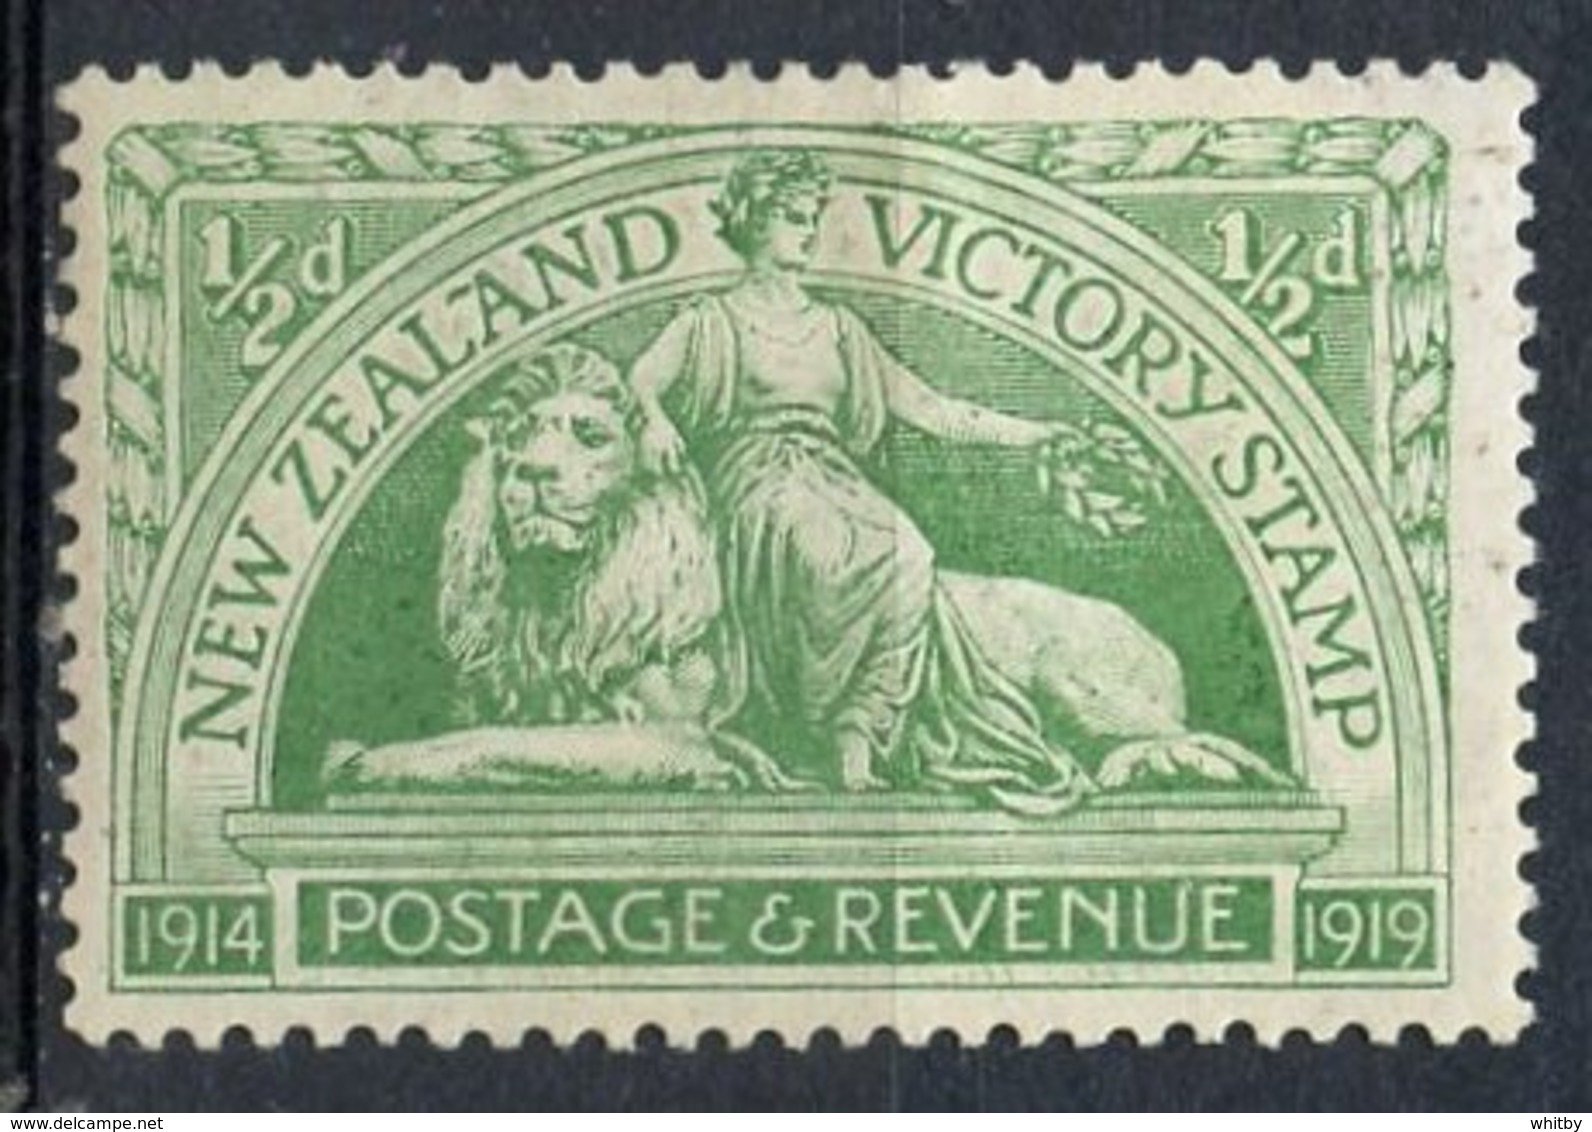 New Zealand 1920 1/2p Victory Stamp Issue #165  MH - Unused Stamps